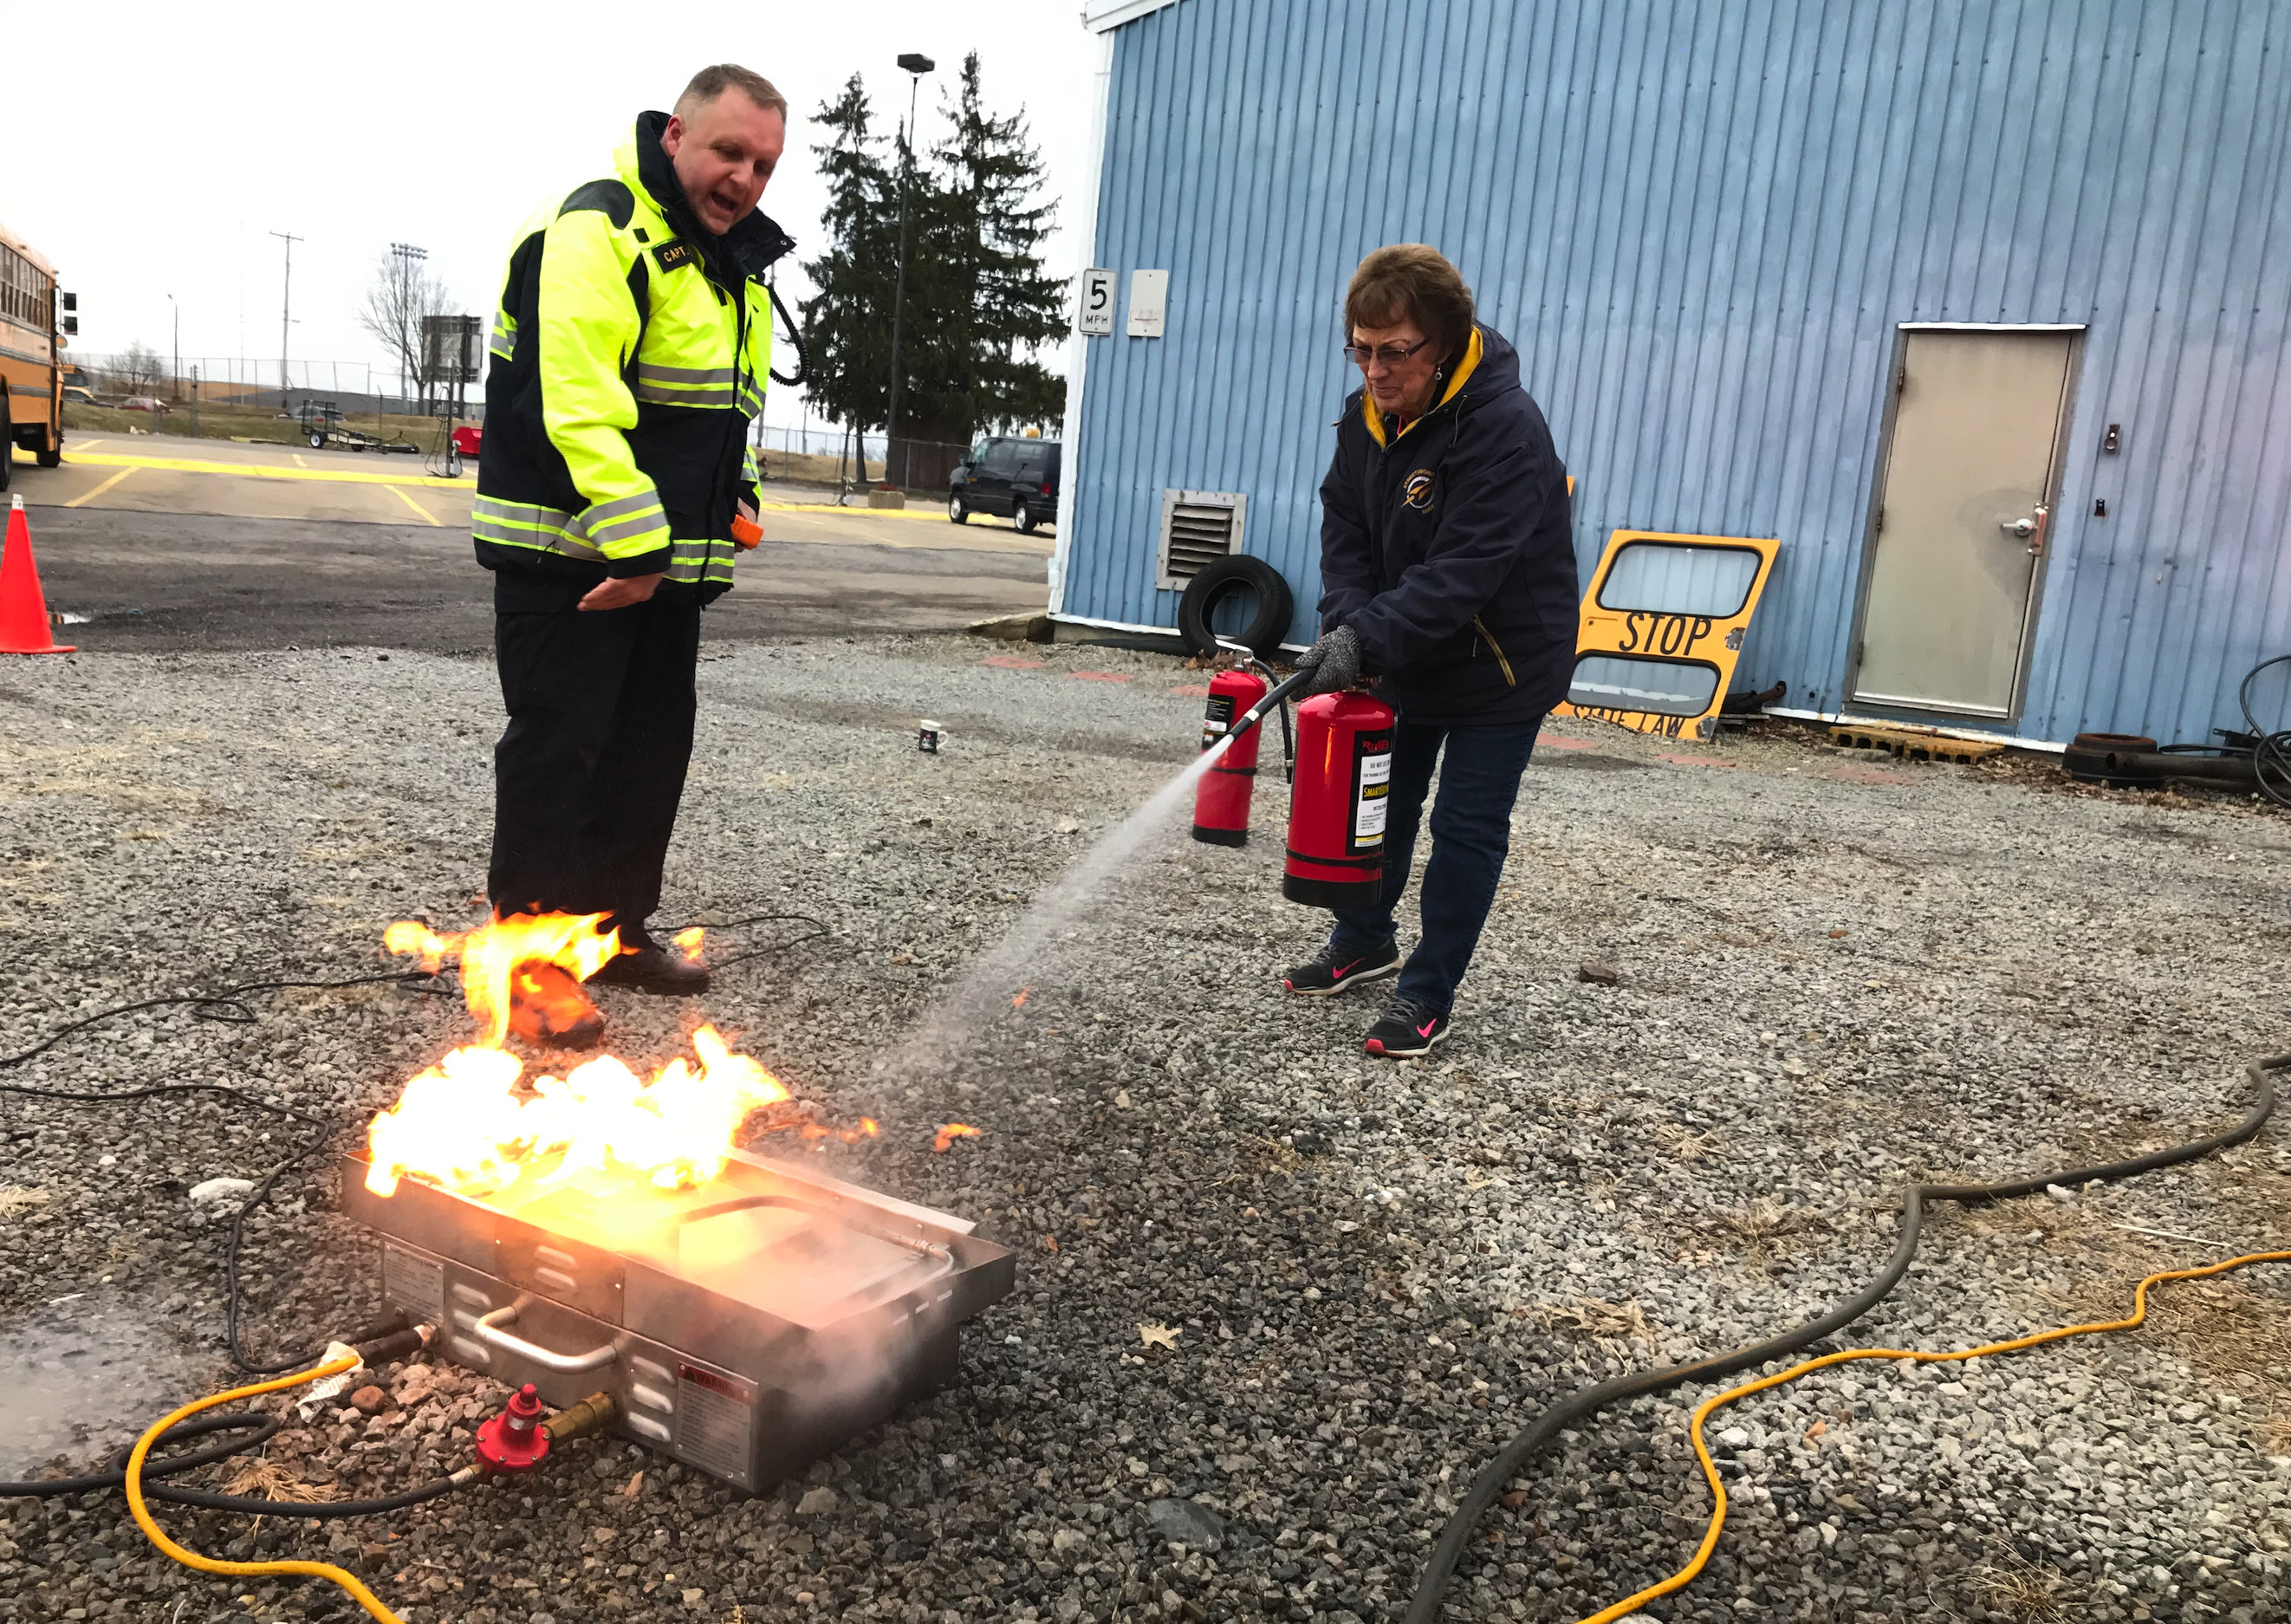 SCS | Transportation Team Engaged in Fire Extinguisher Training